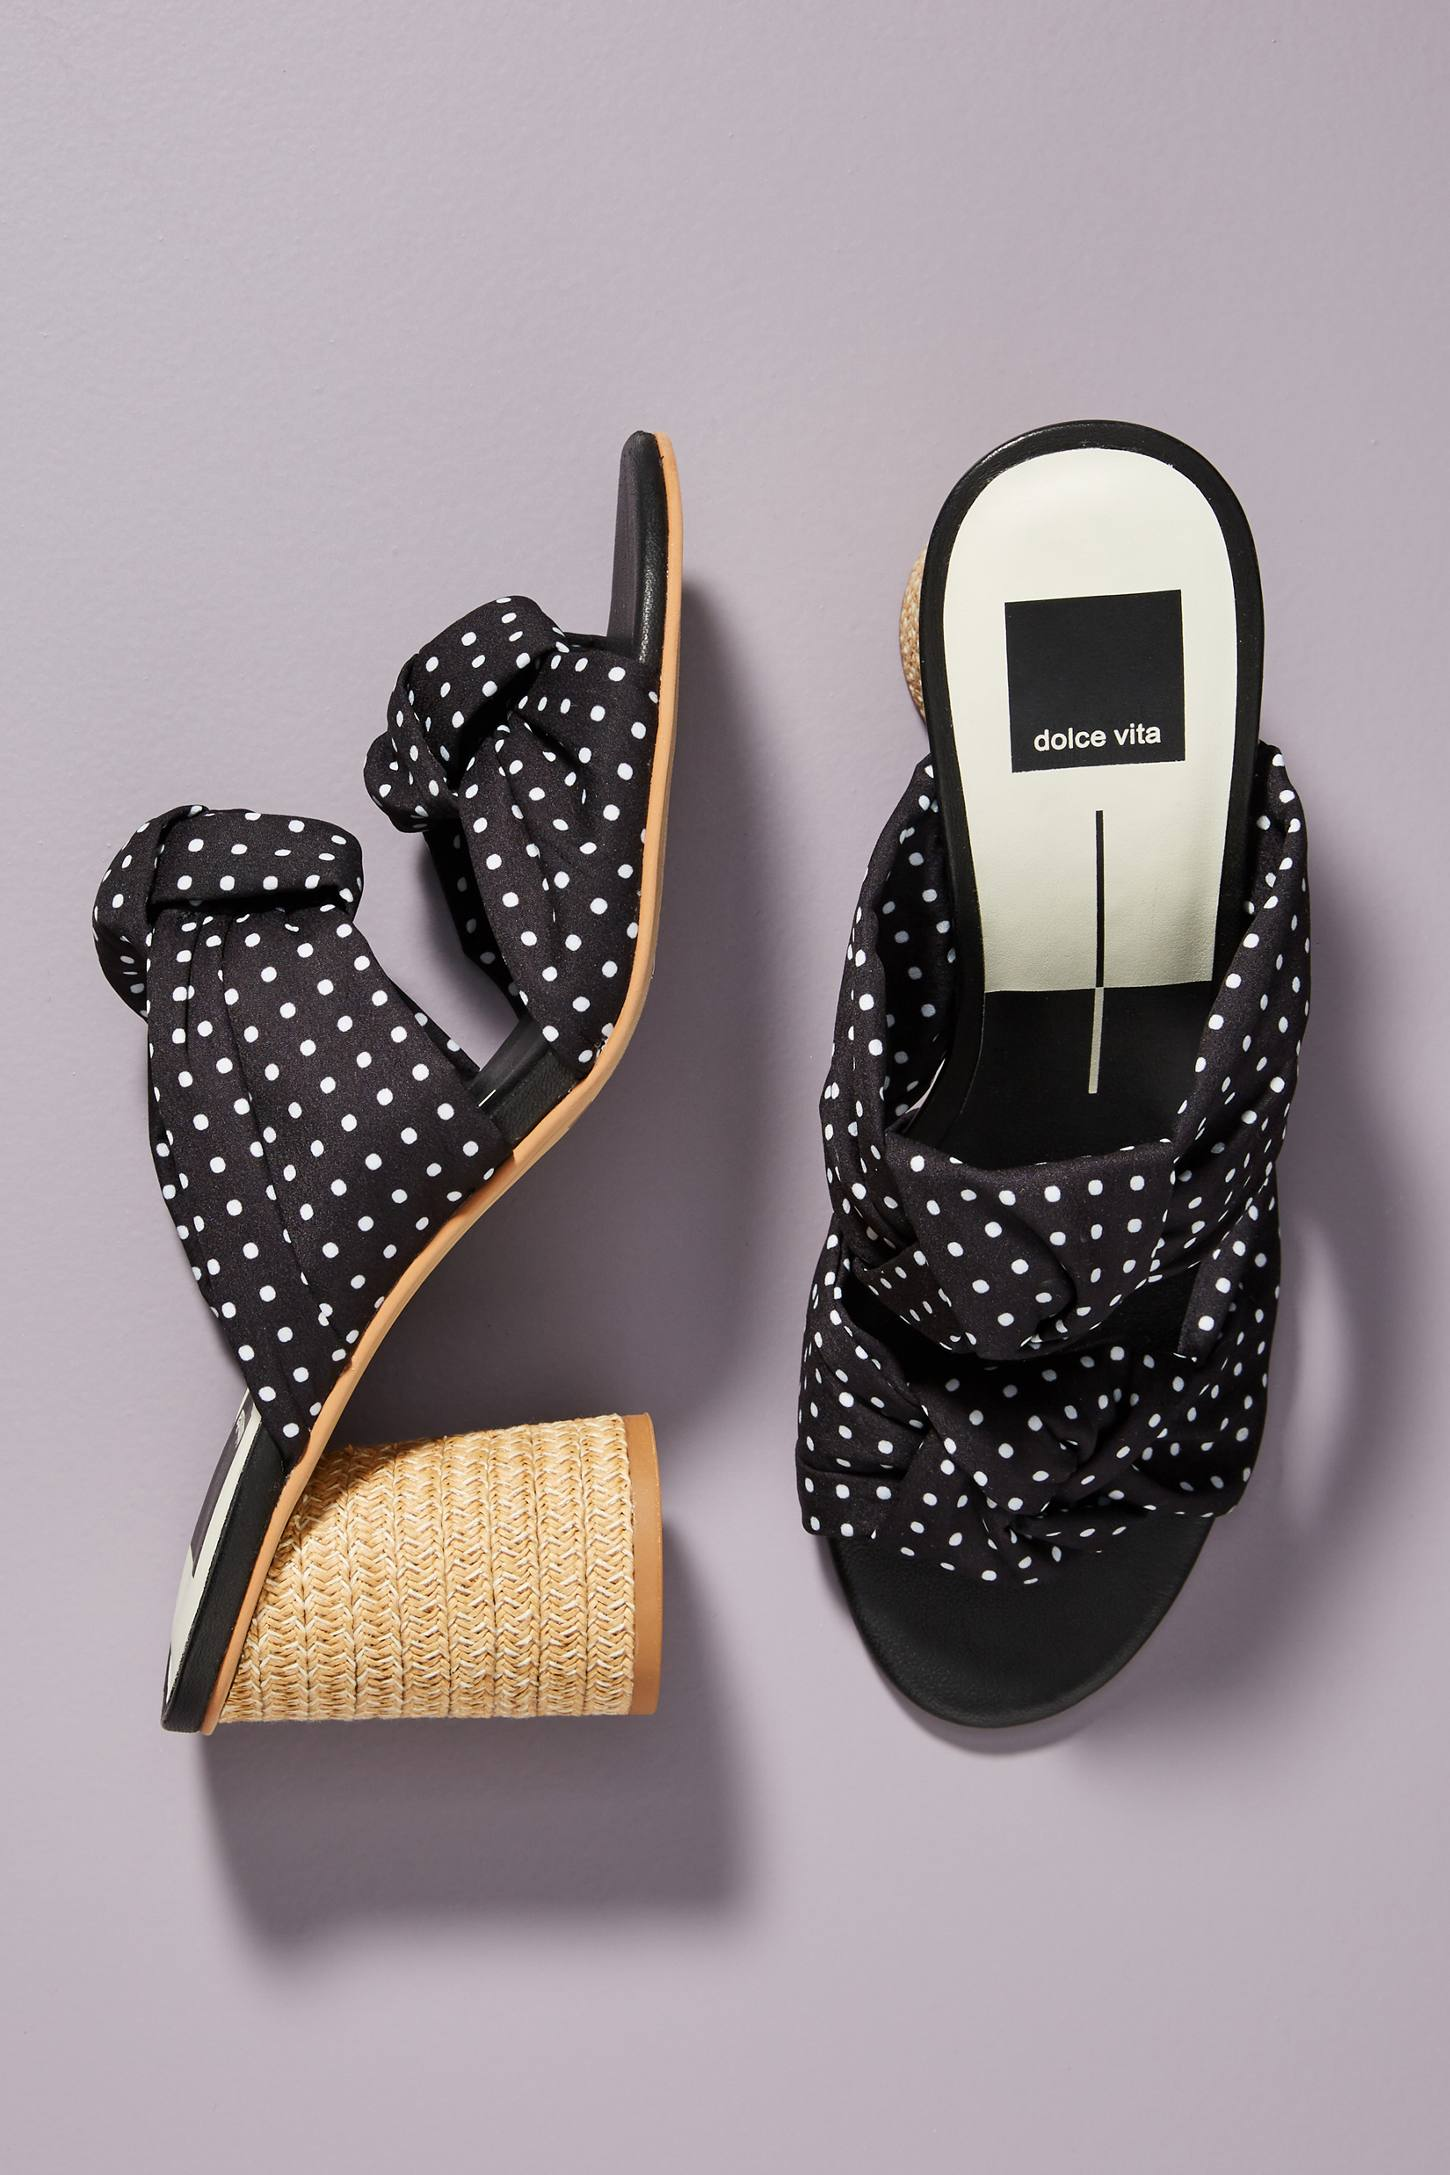 Polka Dot Knotted Heels Black and White